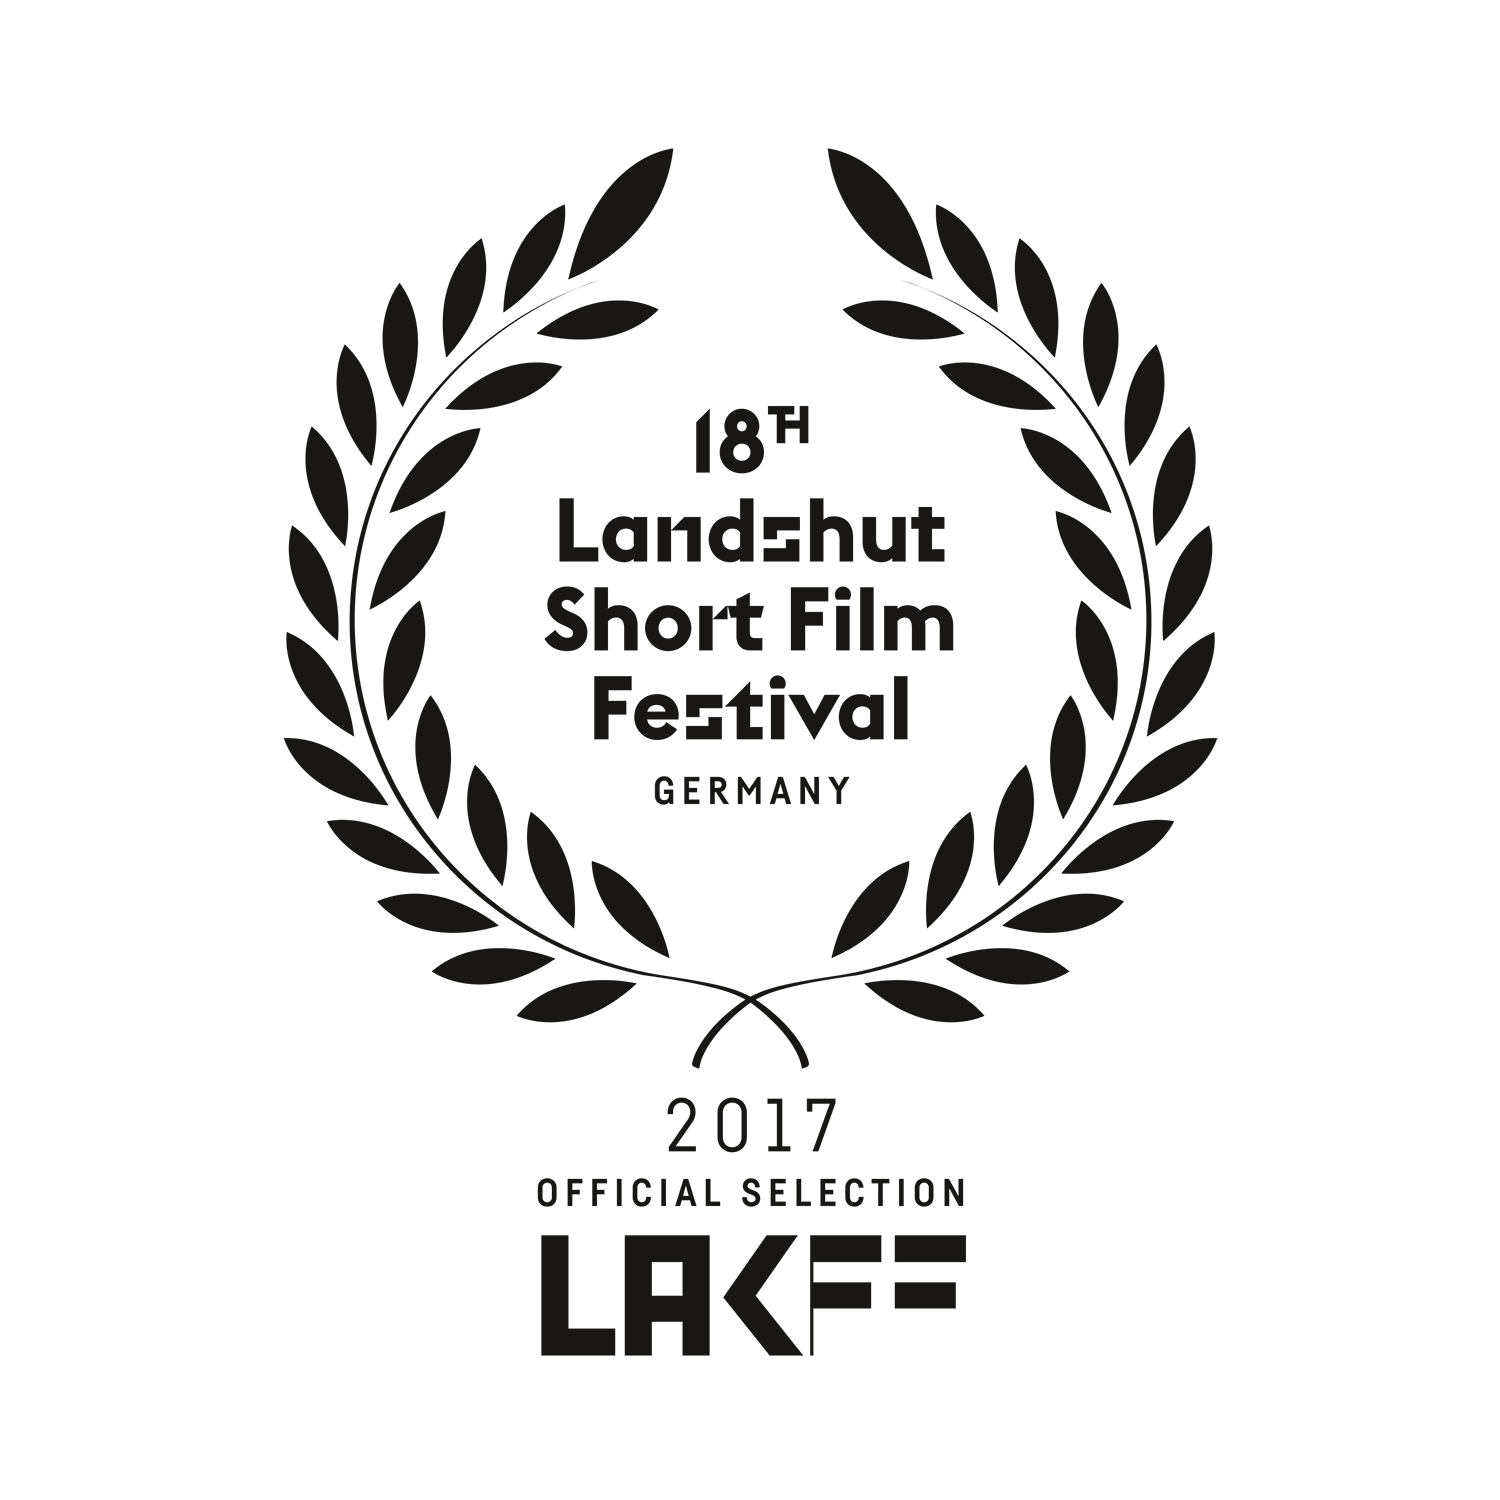 c/Landshut Short Film Festival_Official_Selection 2017